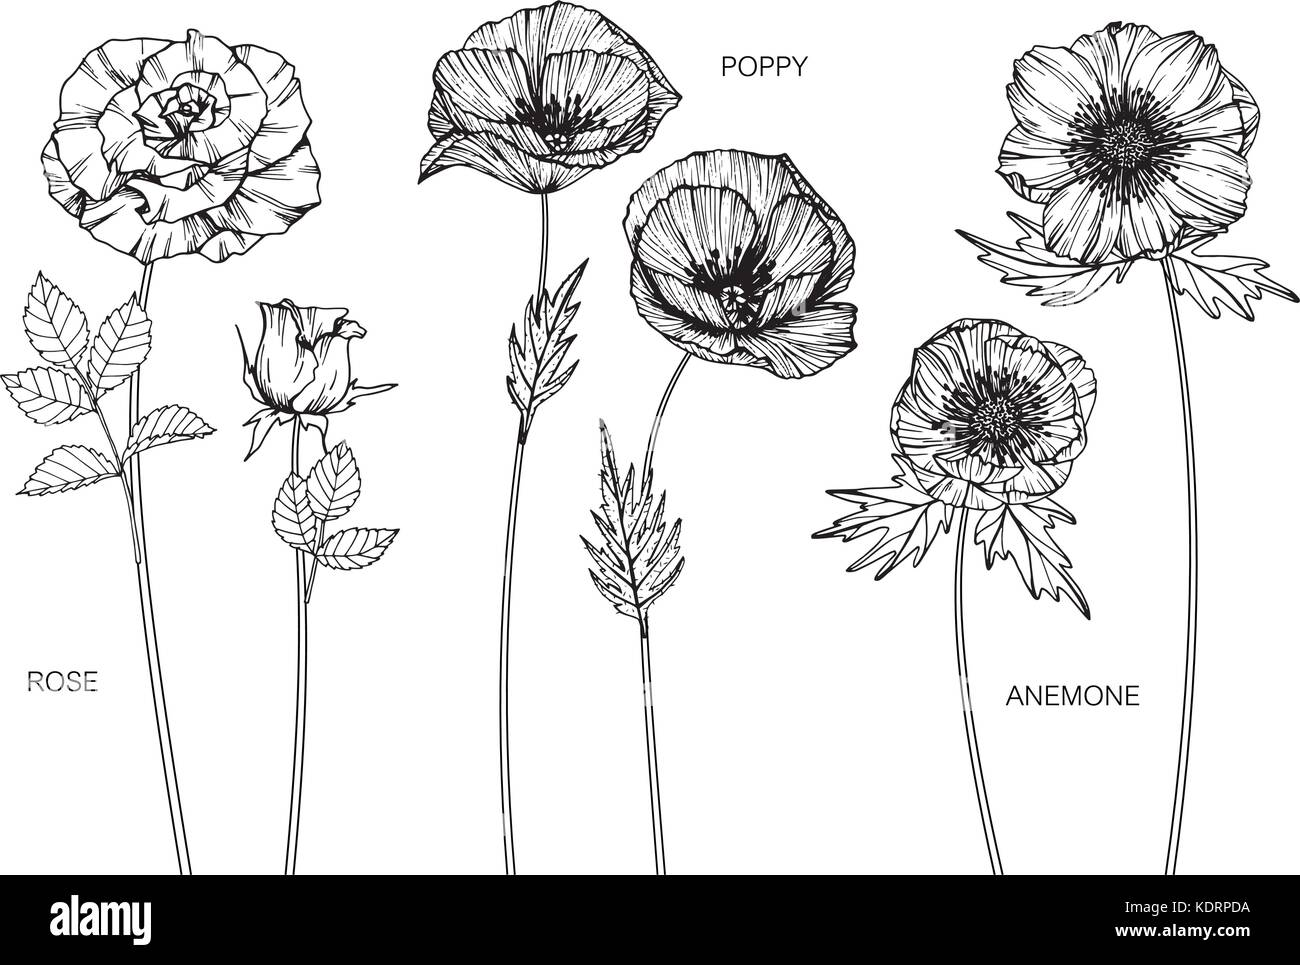 Rose, poppy, anemone flower drawing  illustration. Black and white with line art. - Stock Vector